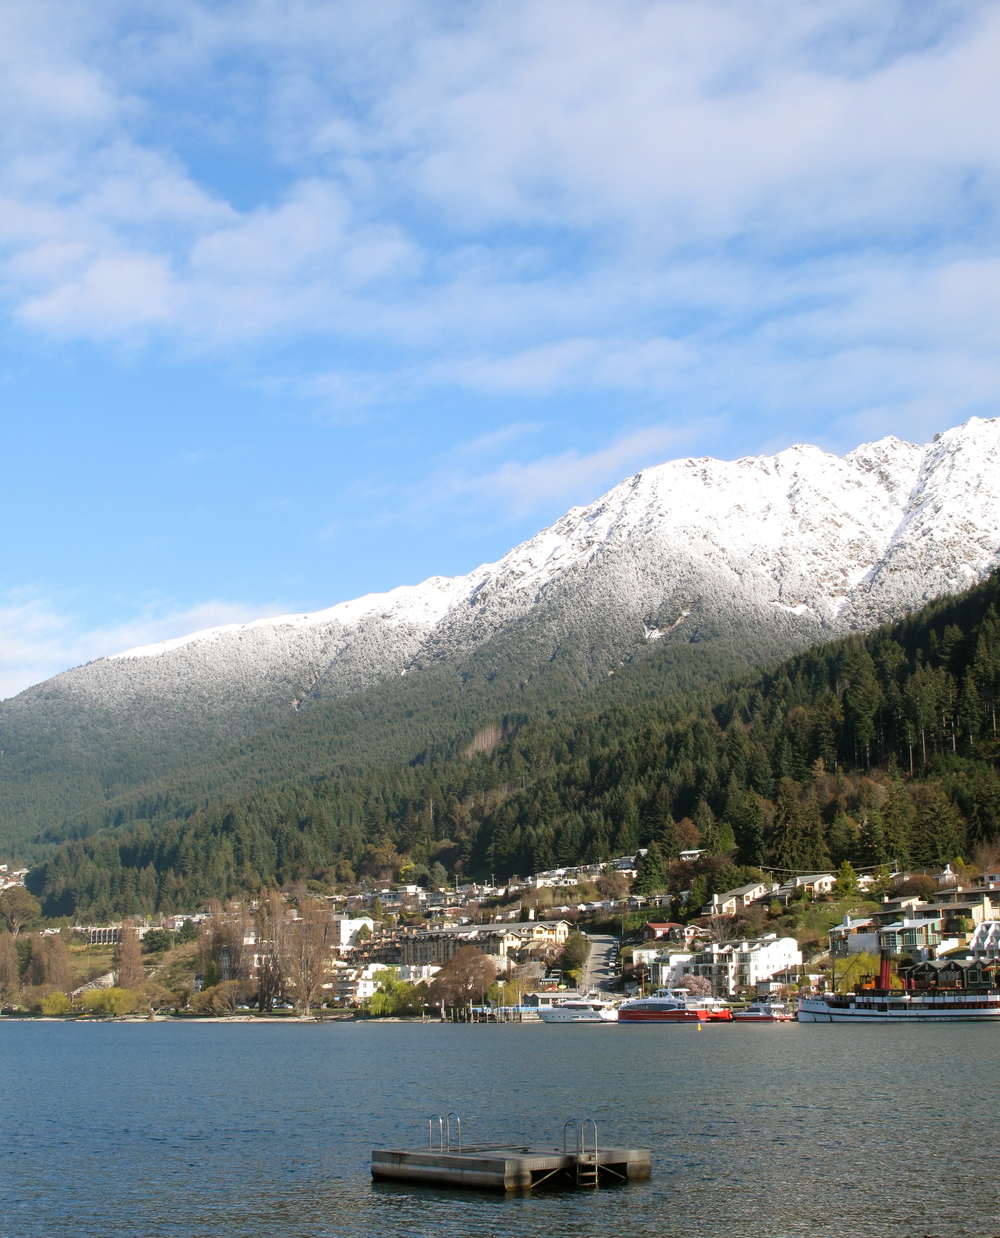 Queenstown lake and hills covered in snow and colourful houses